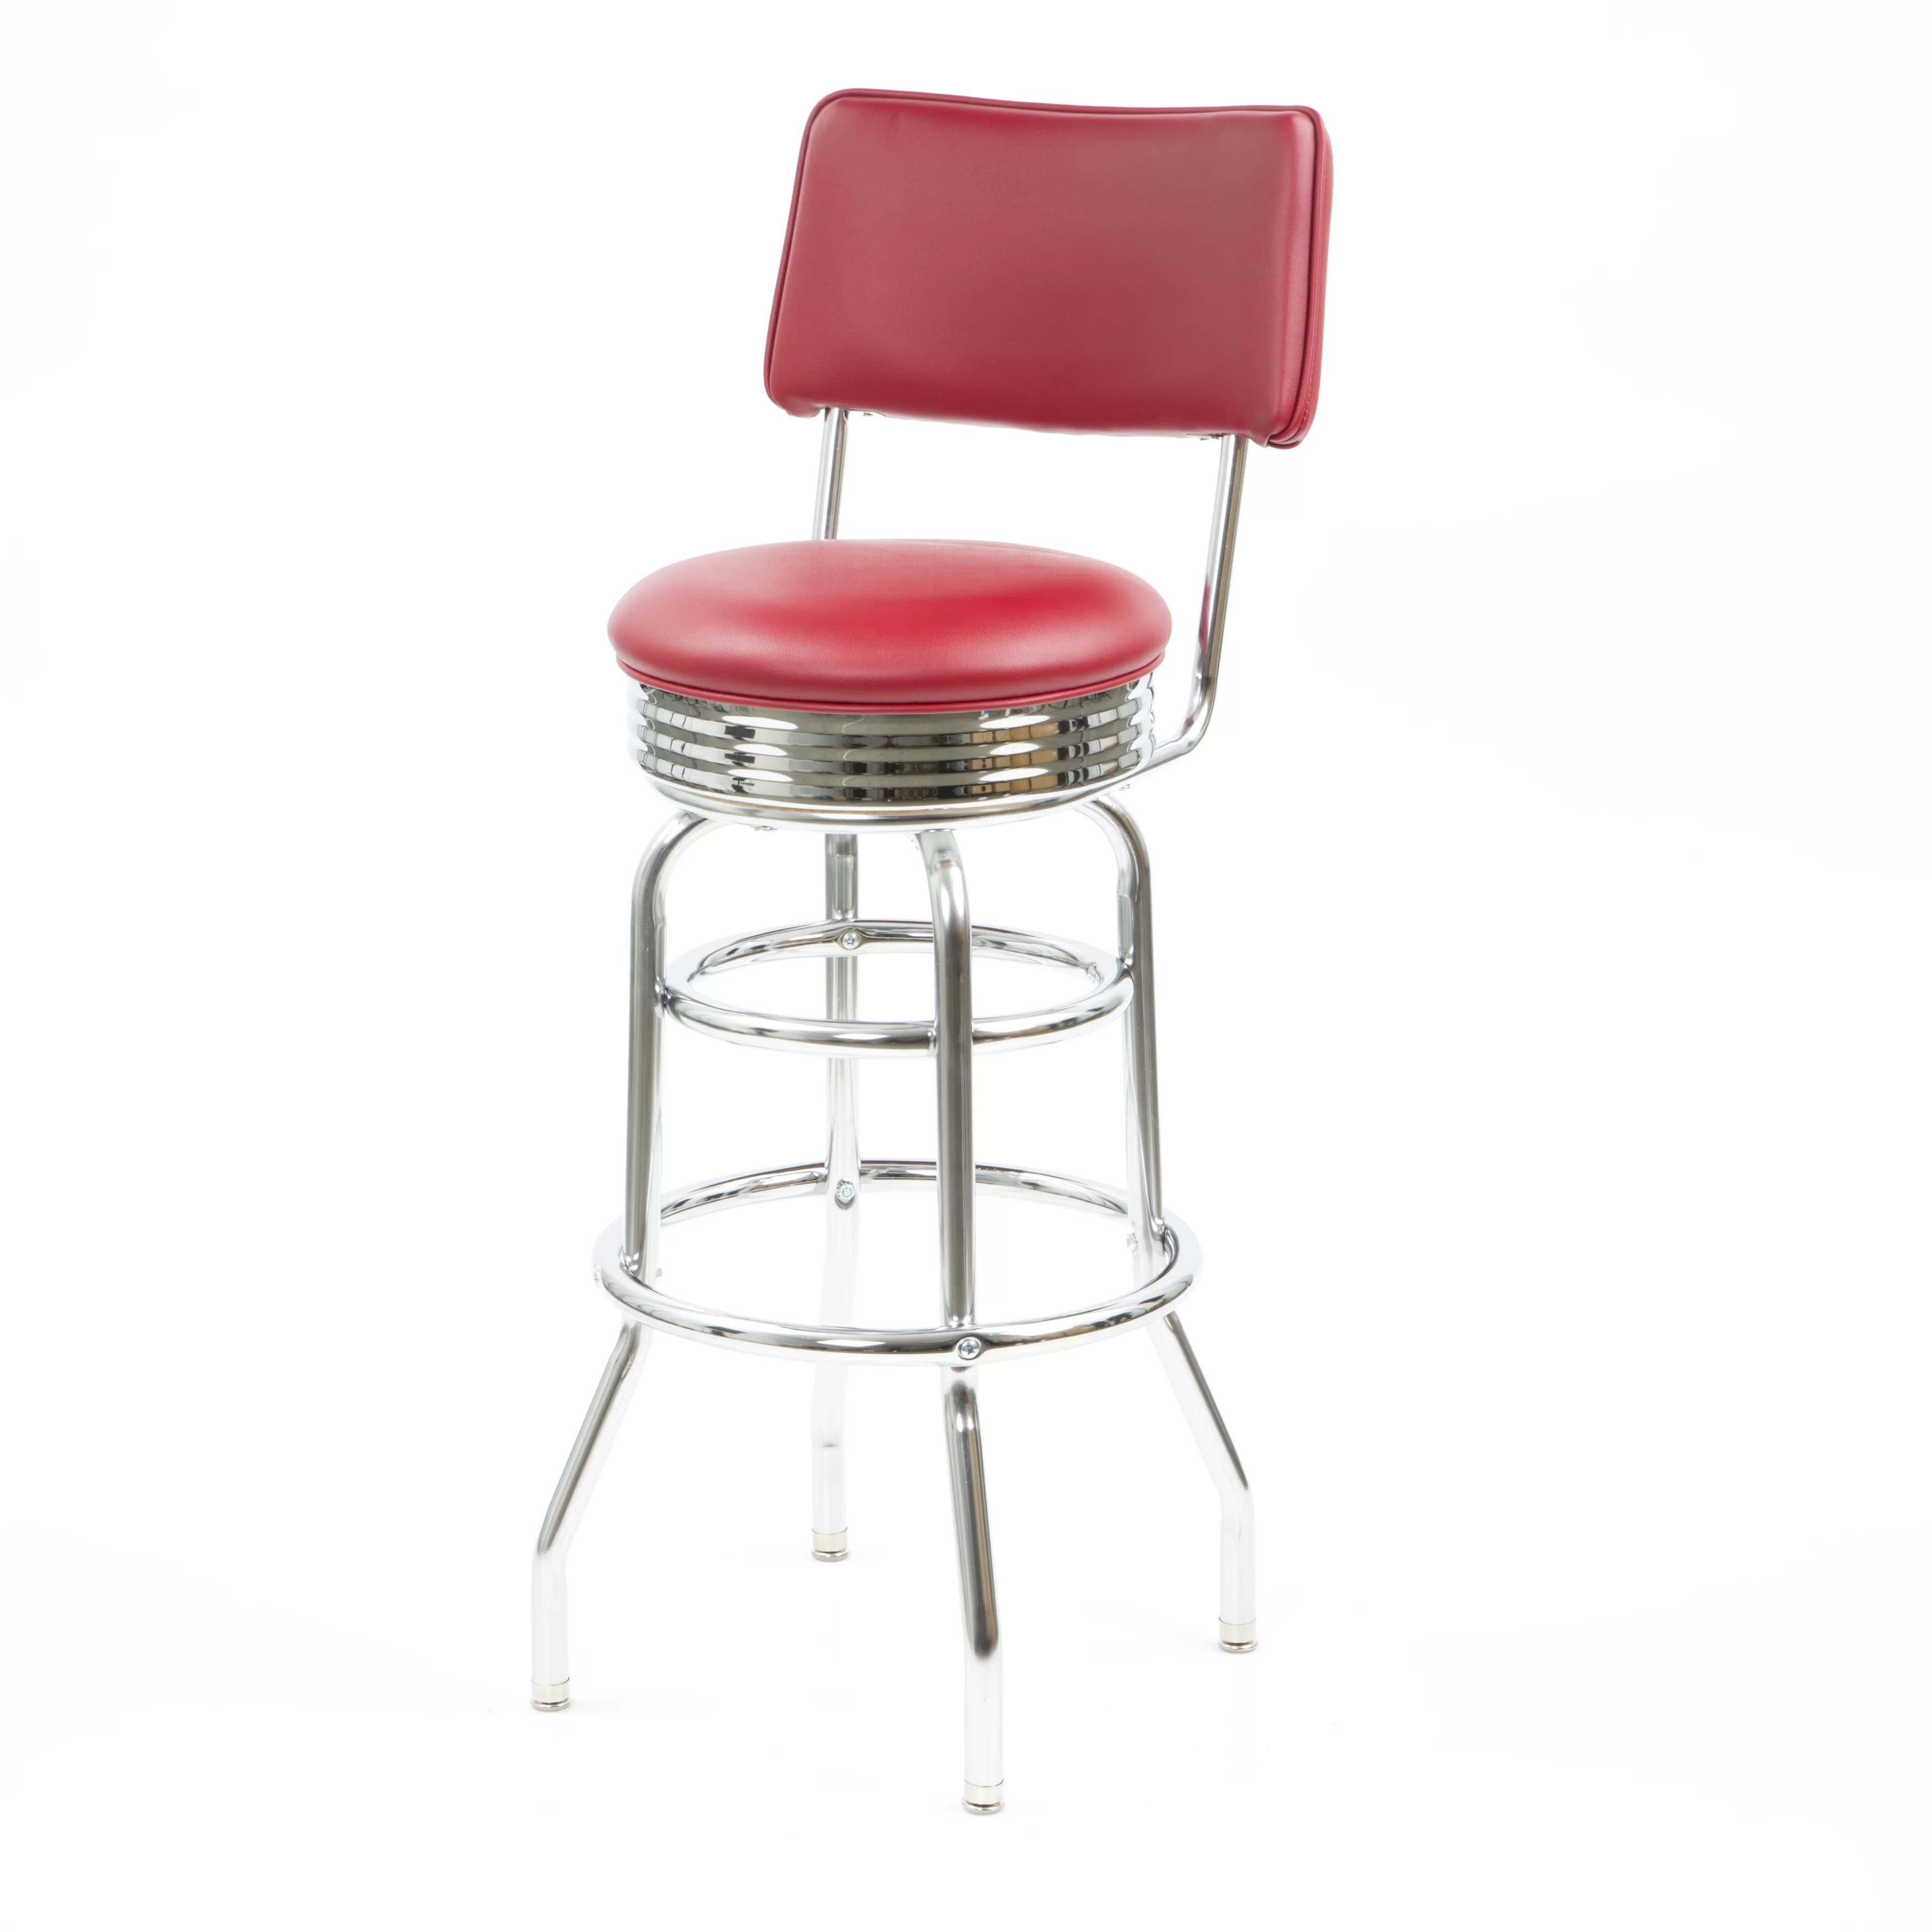 swivel chair regal bedroom chairs cheap new retro express bar stool and reviews wayfair